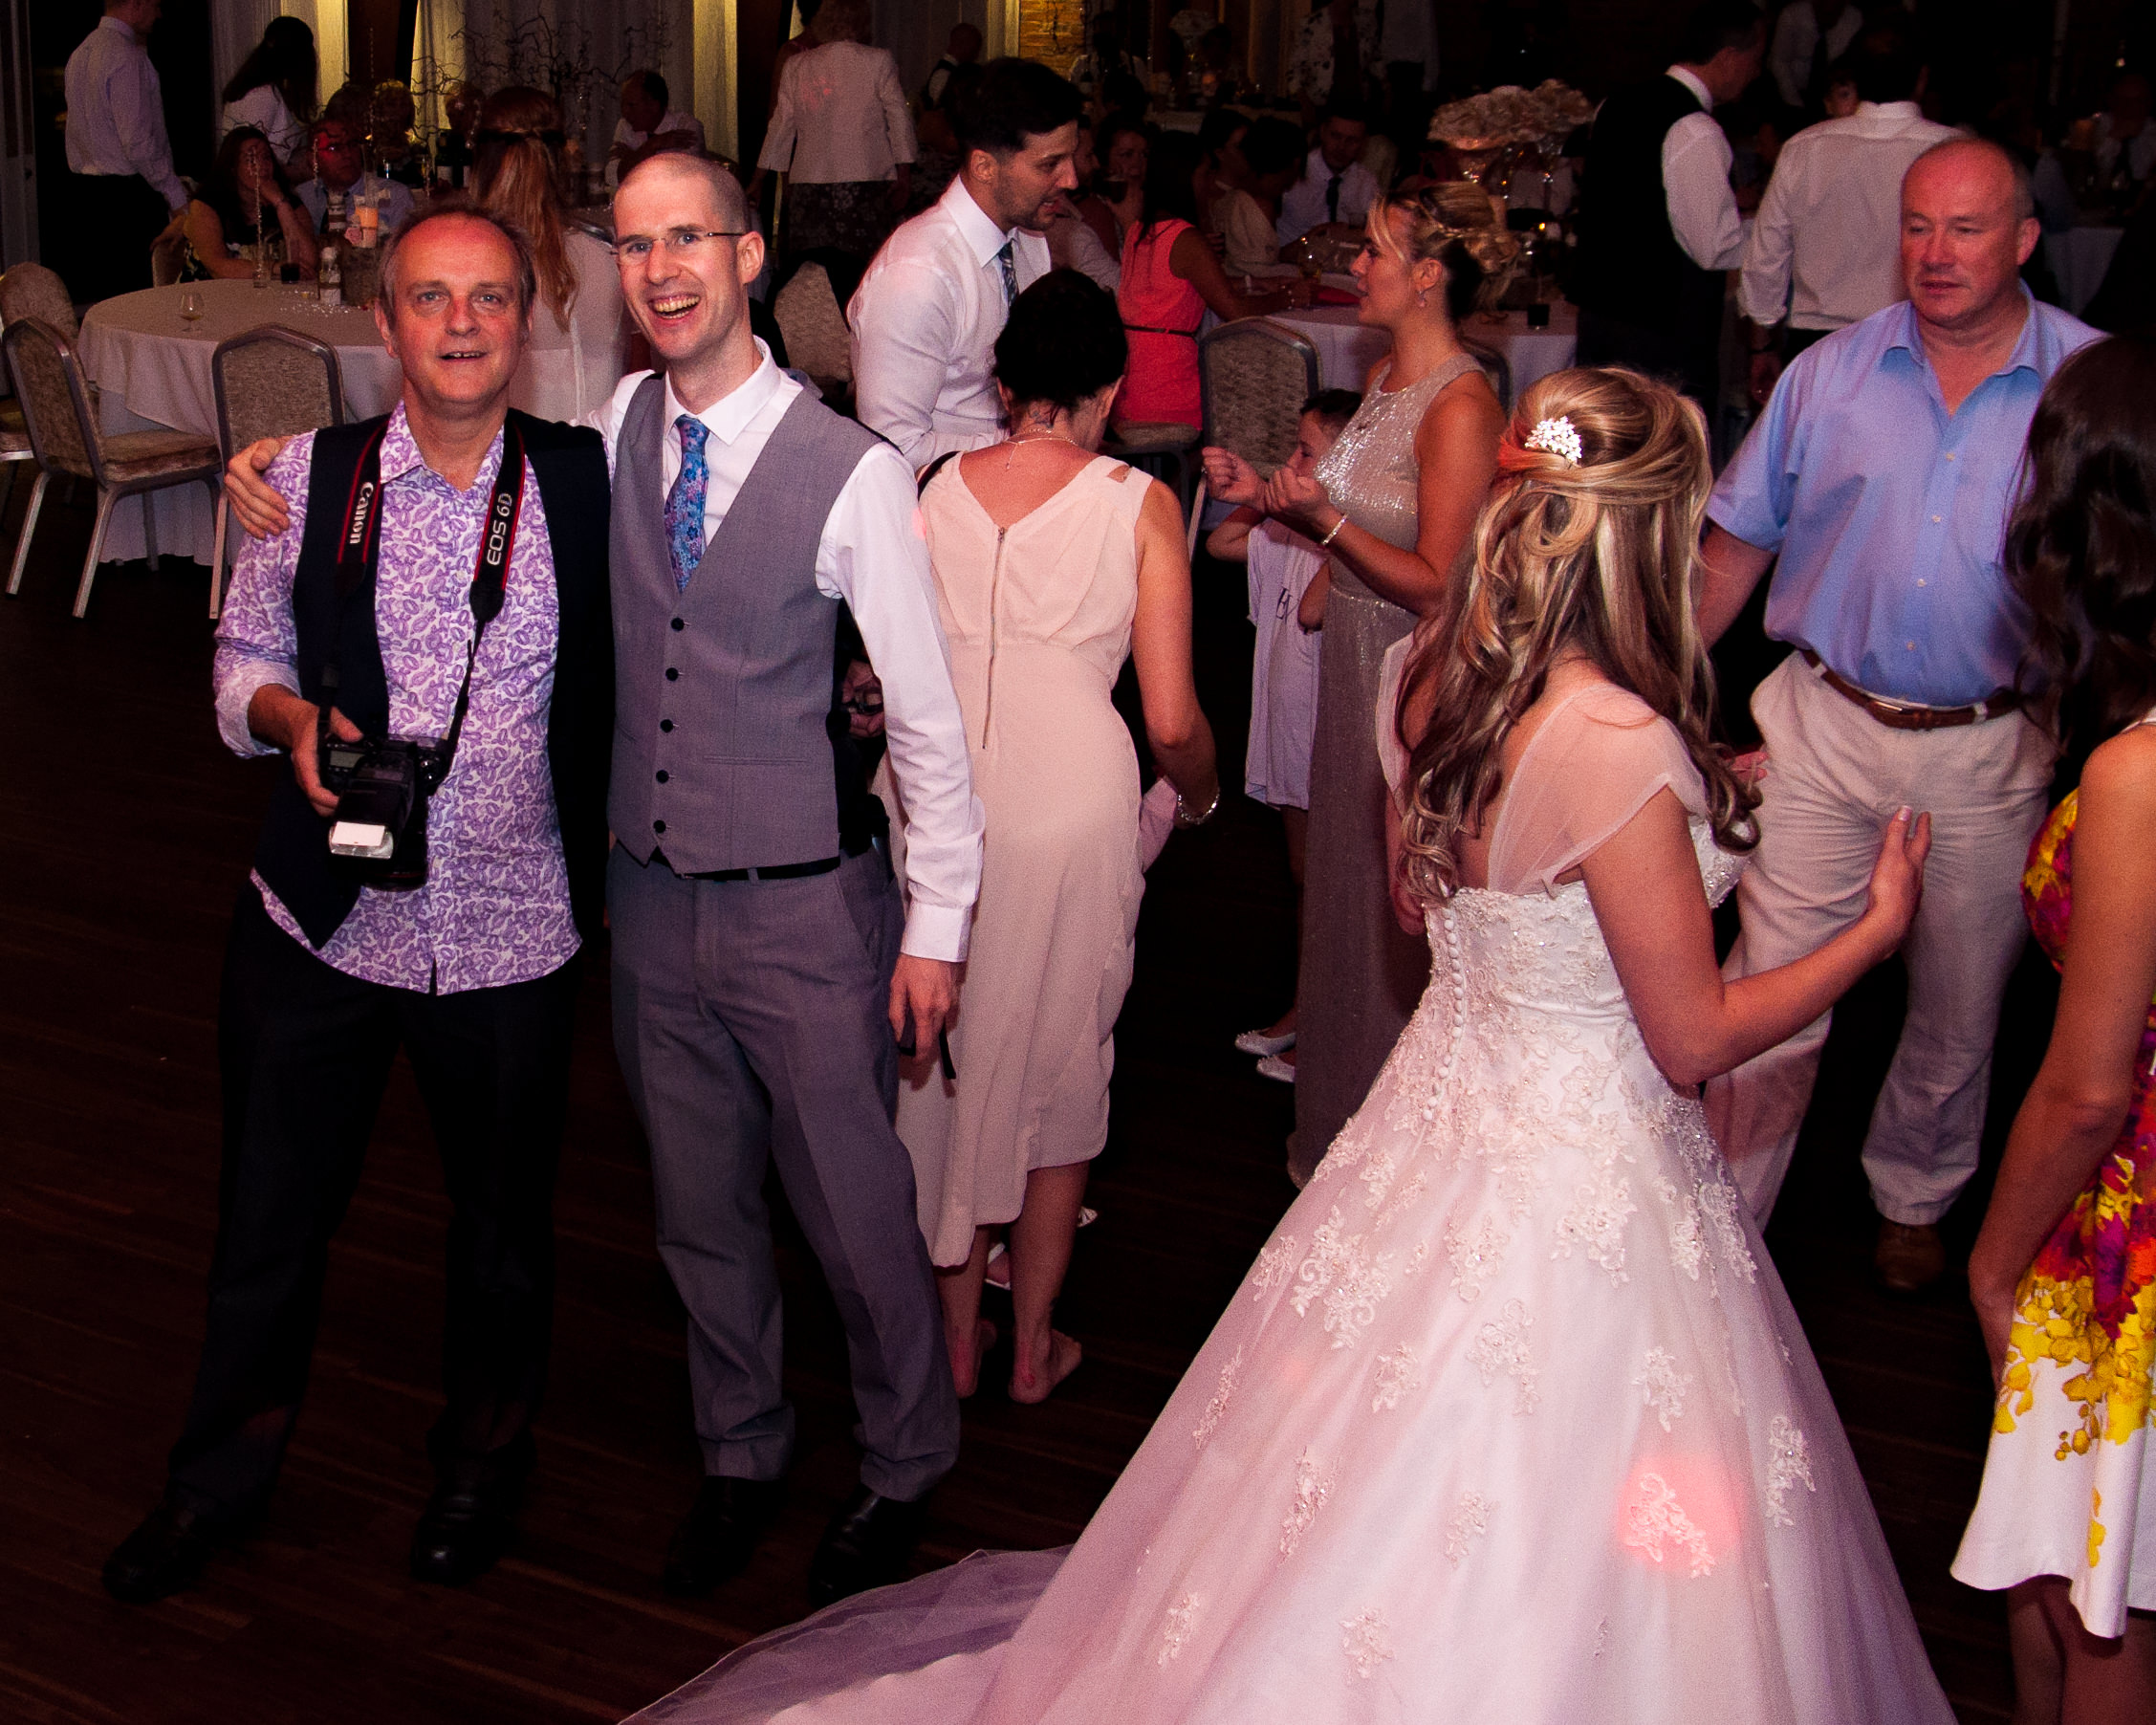 On the dancefloor. Wedding DJ Adam Carr with Andrew Collier at Colshaw Hall with bride in the fore ground.